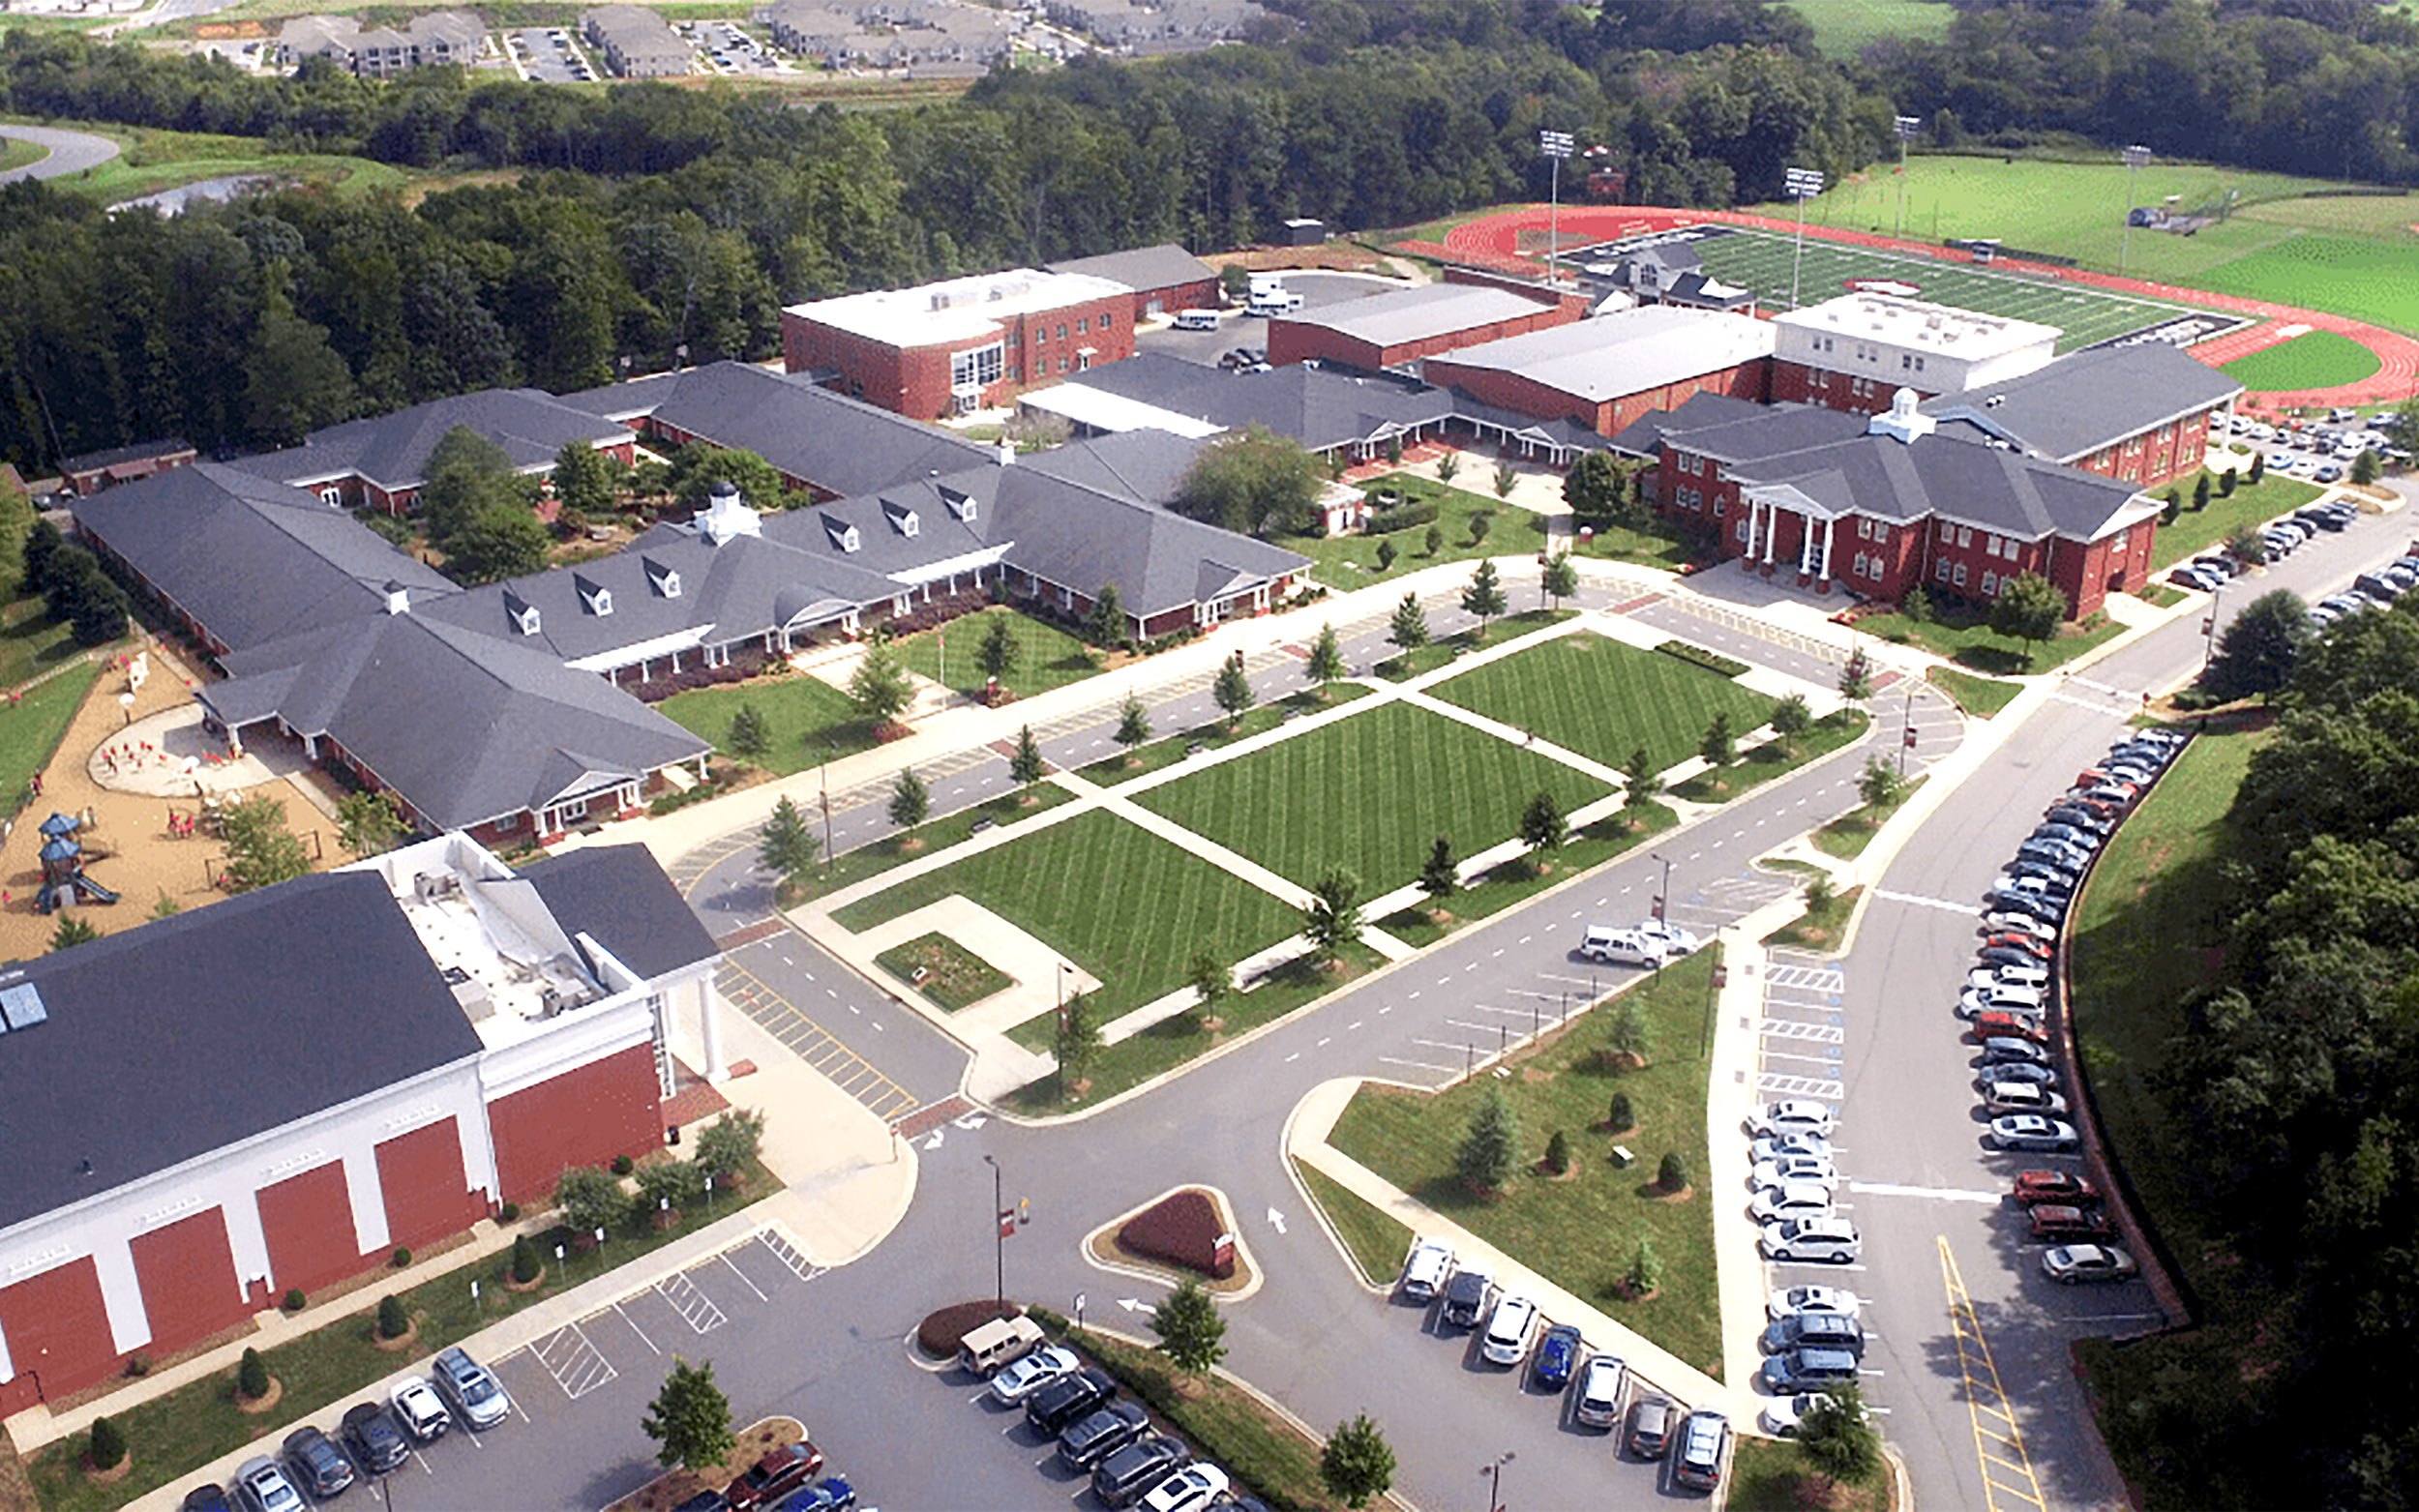 Cannon School Campus